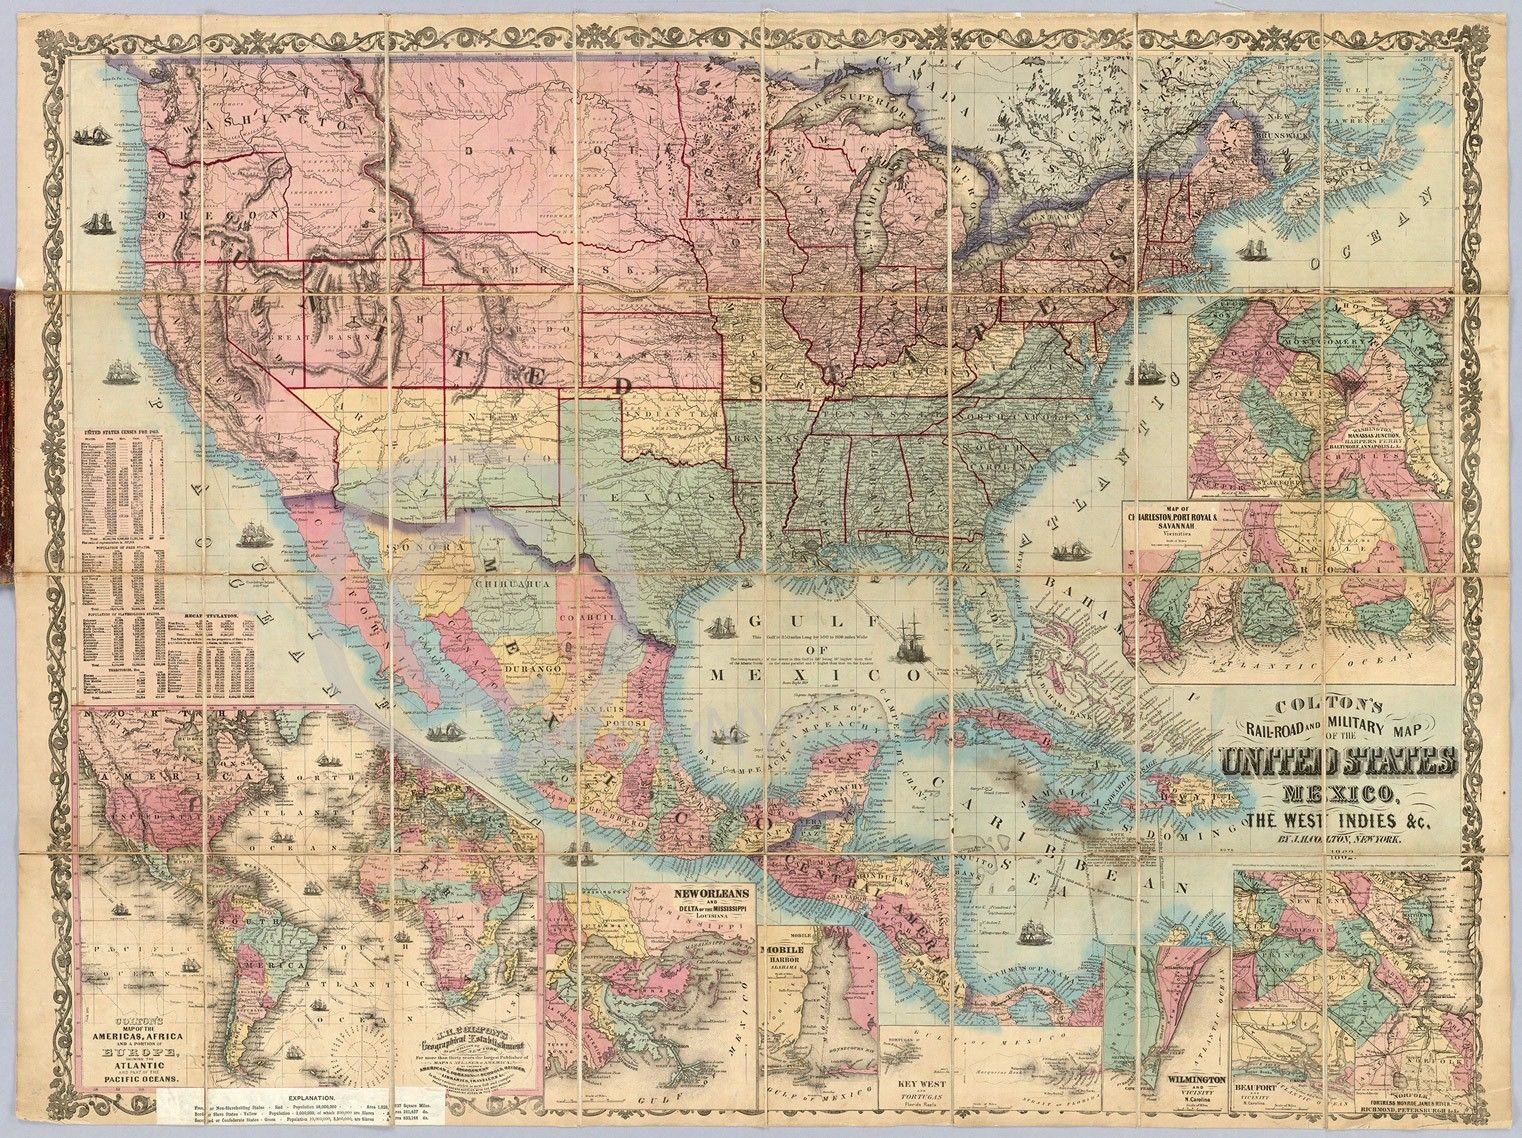 Railroad and Military - U.S. Map mid-1800s